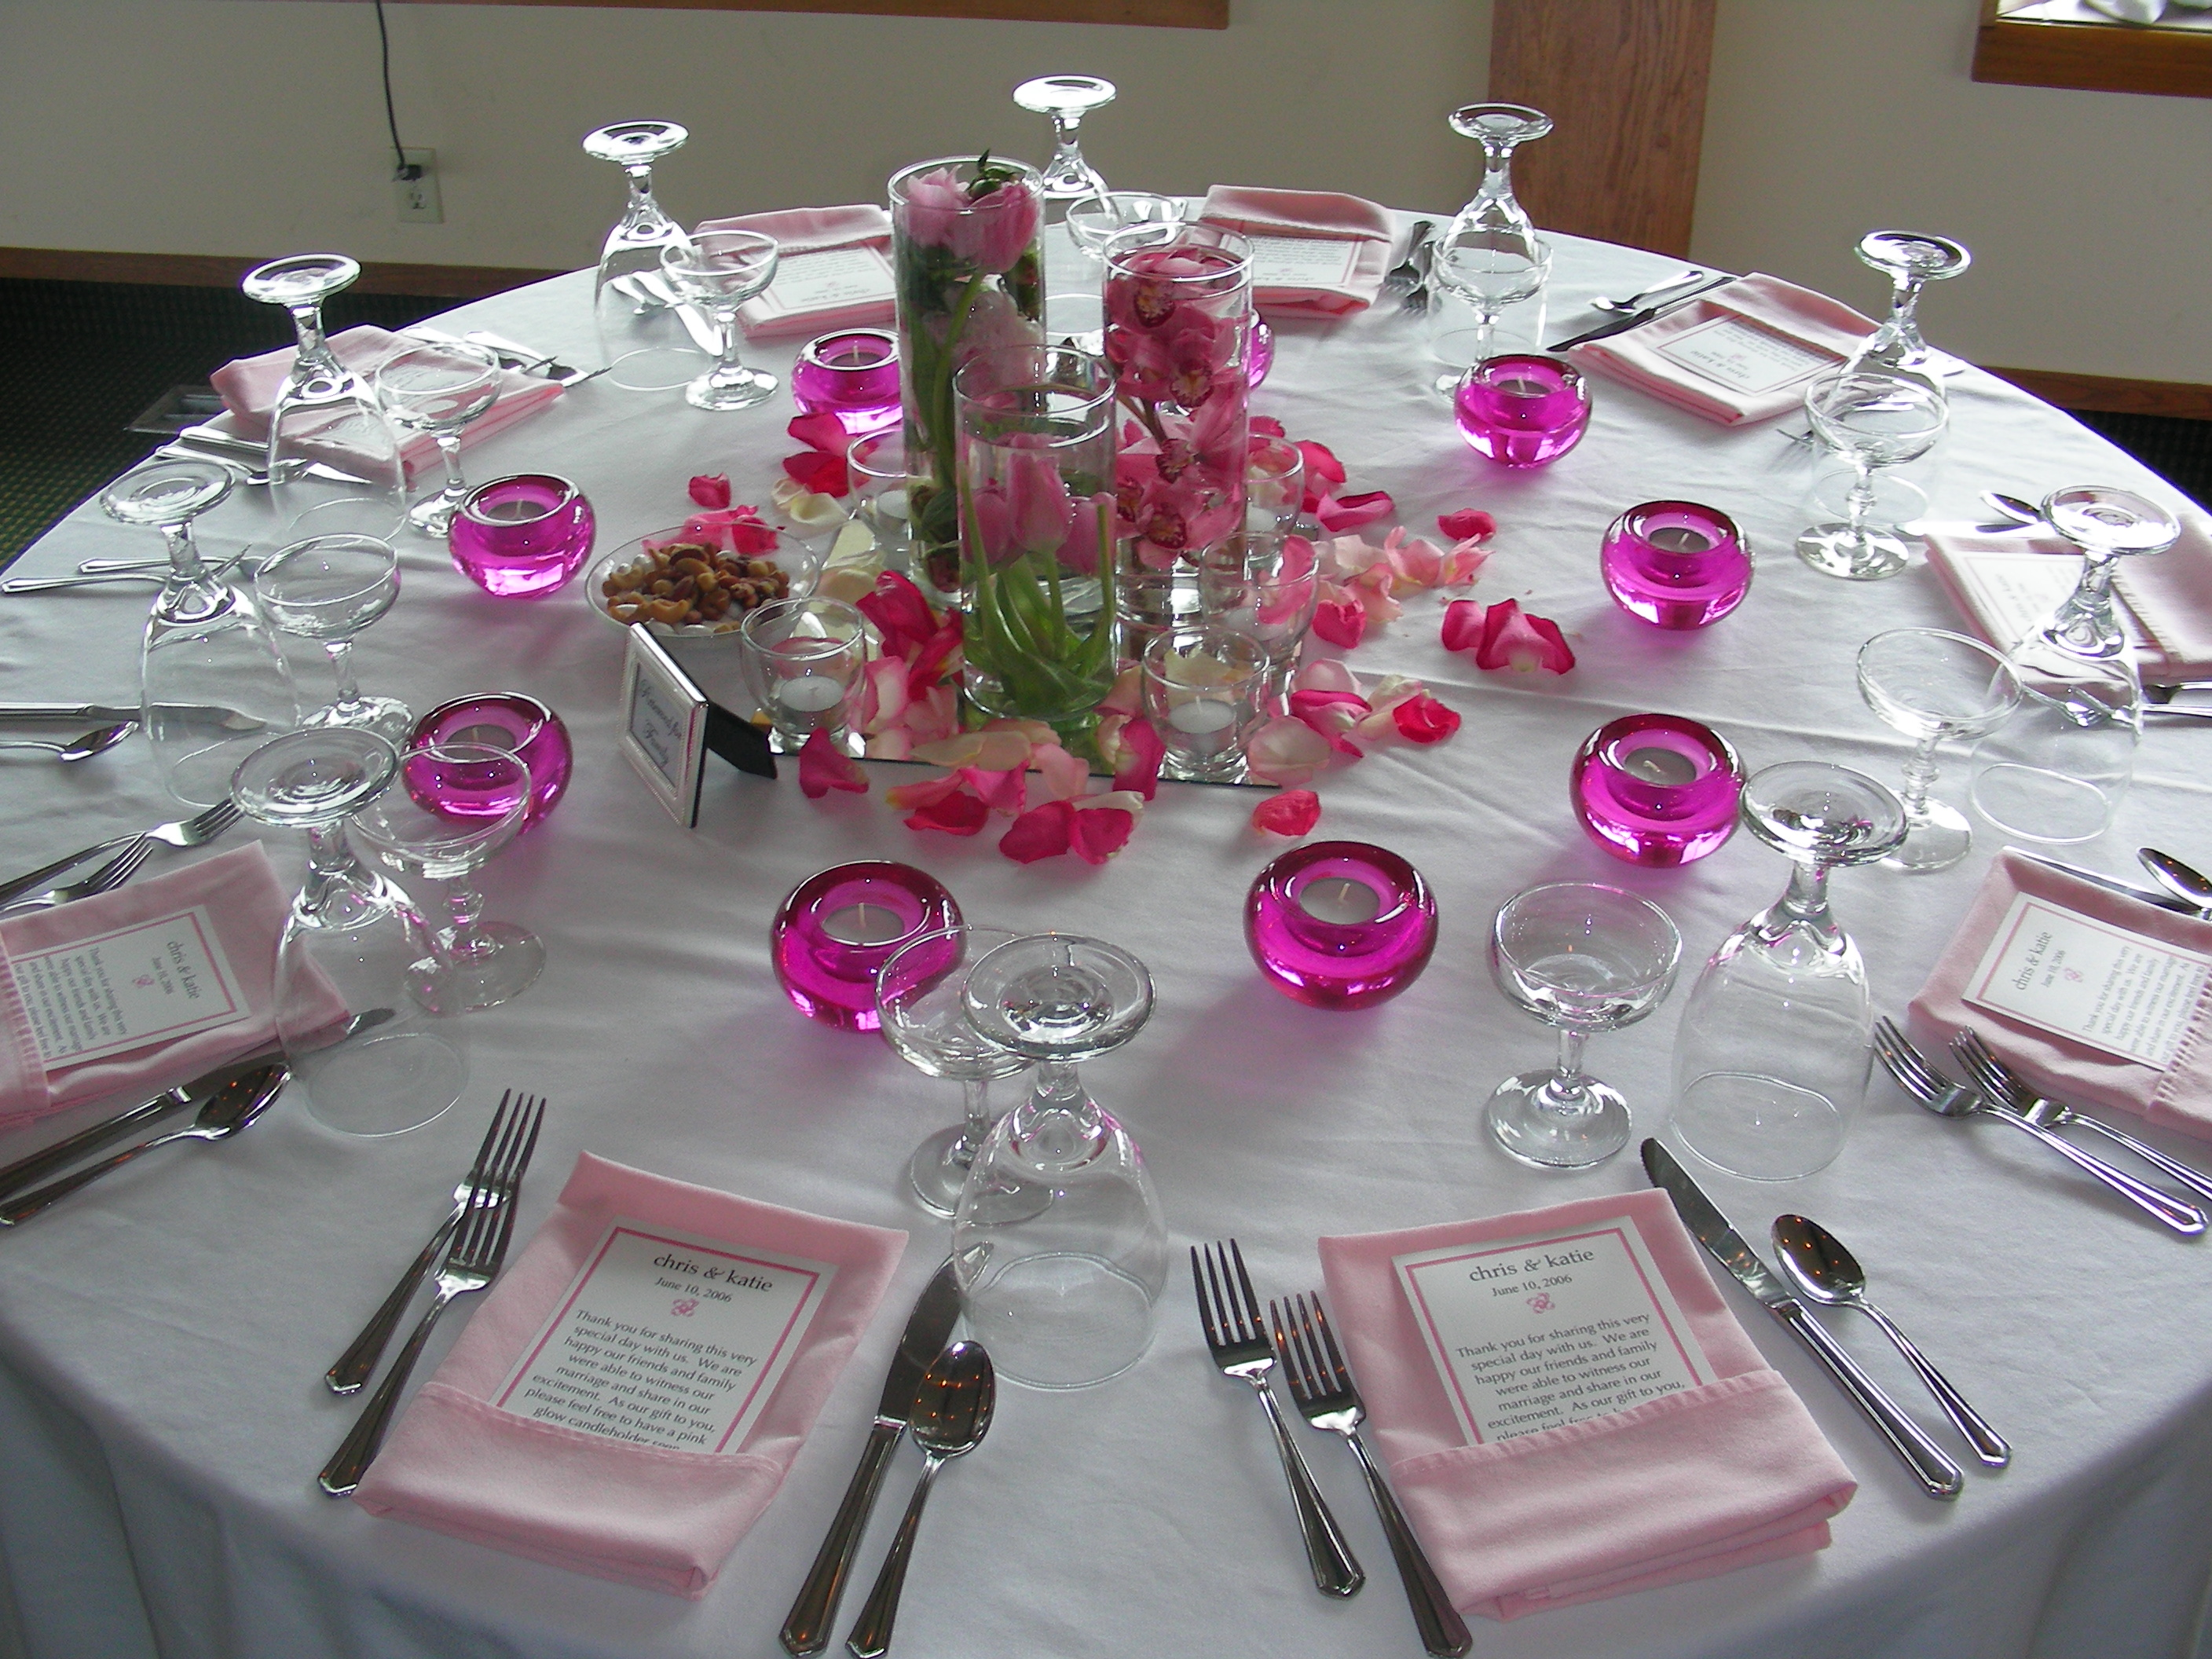 Stunning Wedding Reception Table Decoration Ideas 2816 x 2112 · 2078 kB · jpeg